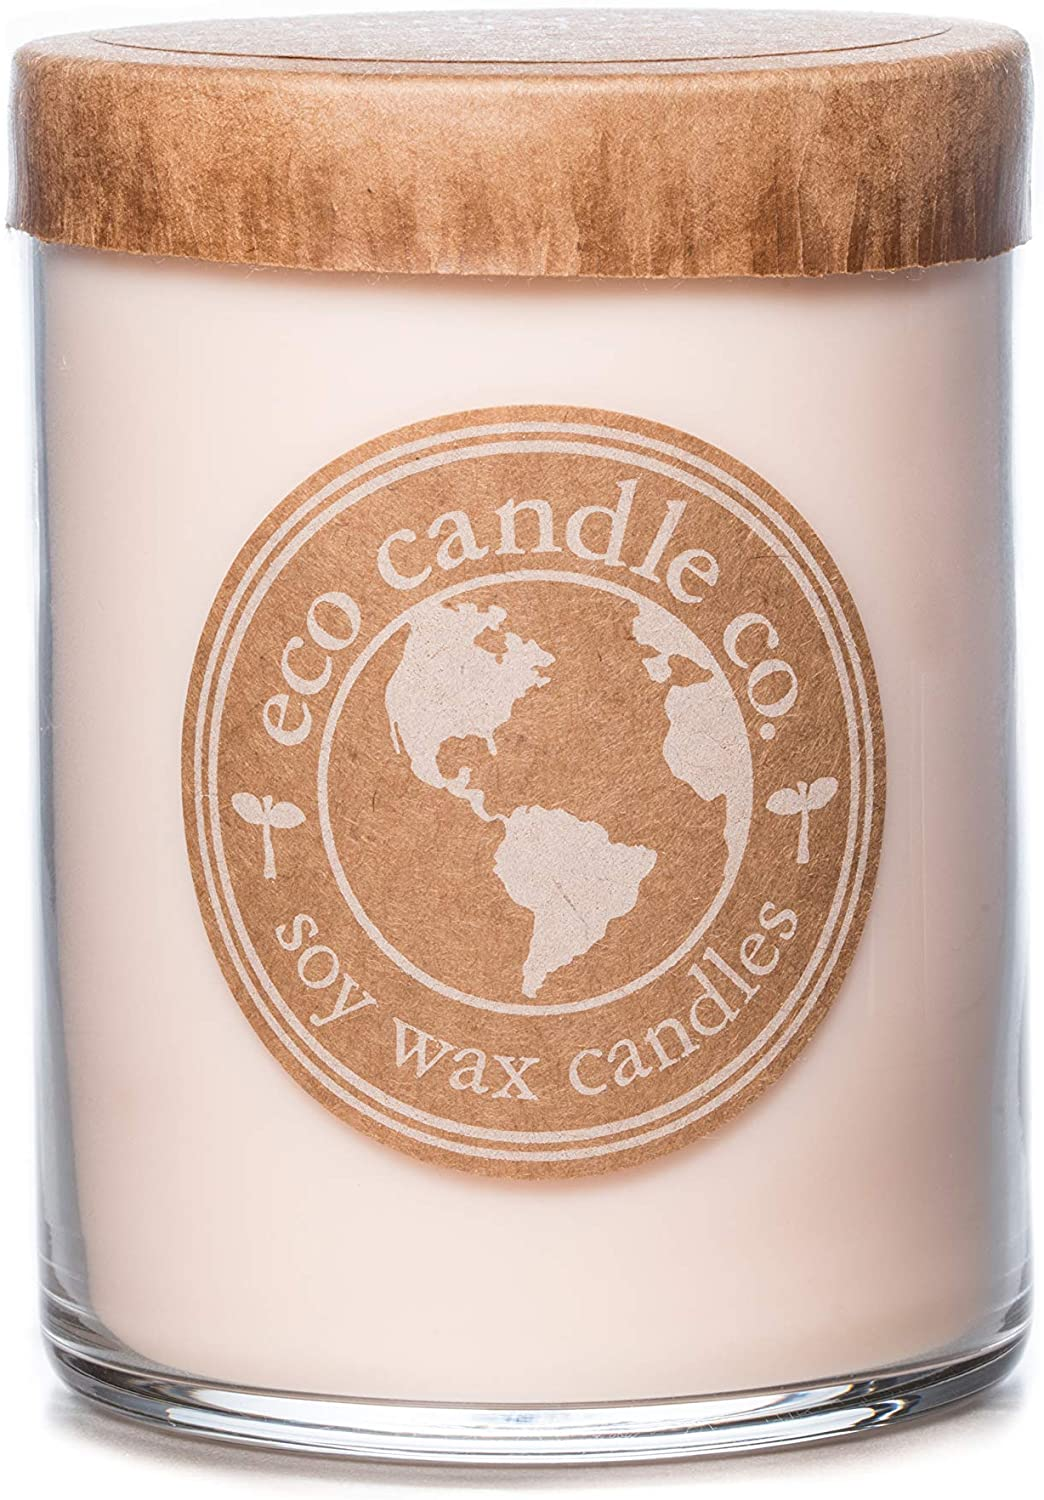 Eco Candle Co. Recycled Candle, Gardenia & Guava, 16 Oz. - 100% Soy Wax, No Lead, Kraft Paper Label & Lid, Hand Poured, Phthalate Free, Made from Midwest Grown Soybeans, All Natural Wicks